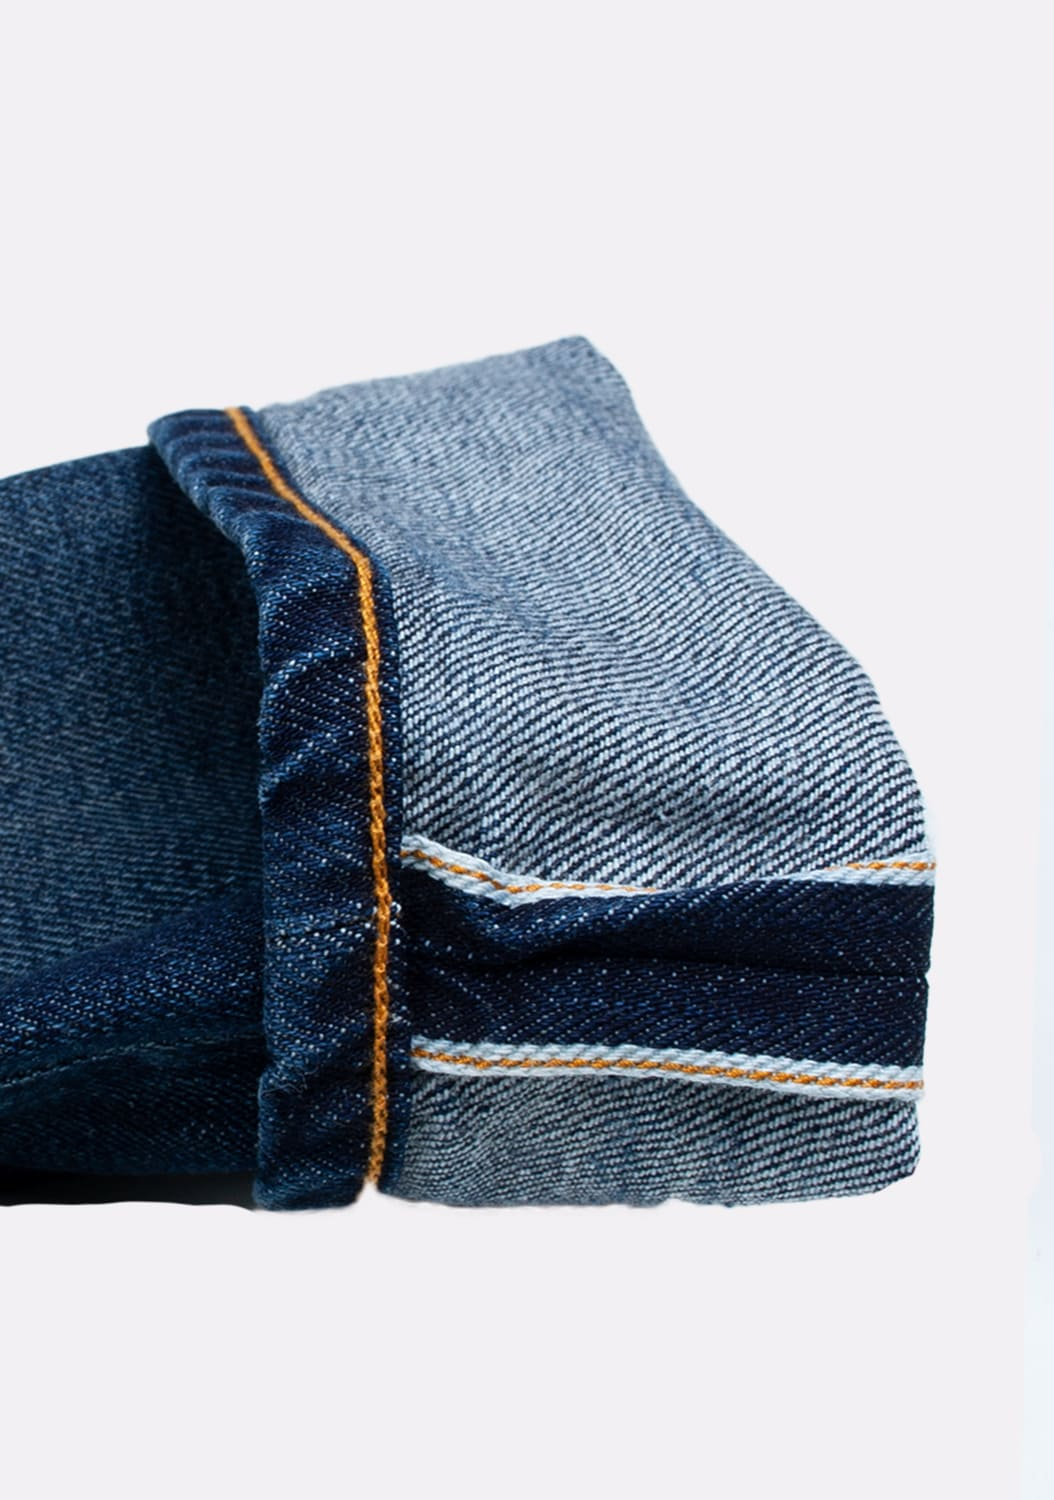 Nudie-Thin-Finn-Jonas-Replica-Selvage-Selvedge-melyni-dzinsai-dydis-31-32 (6)